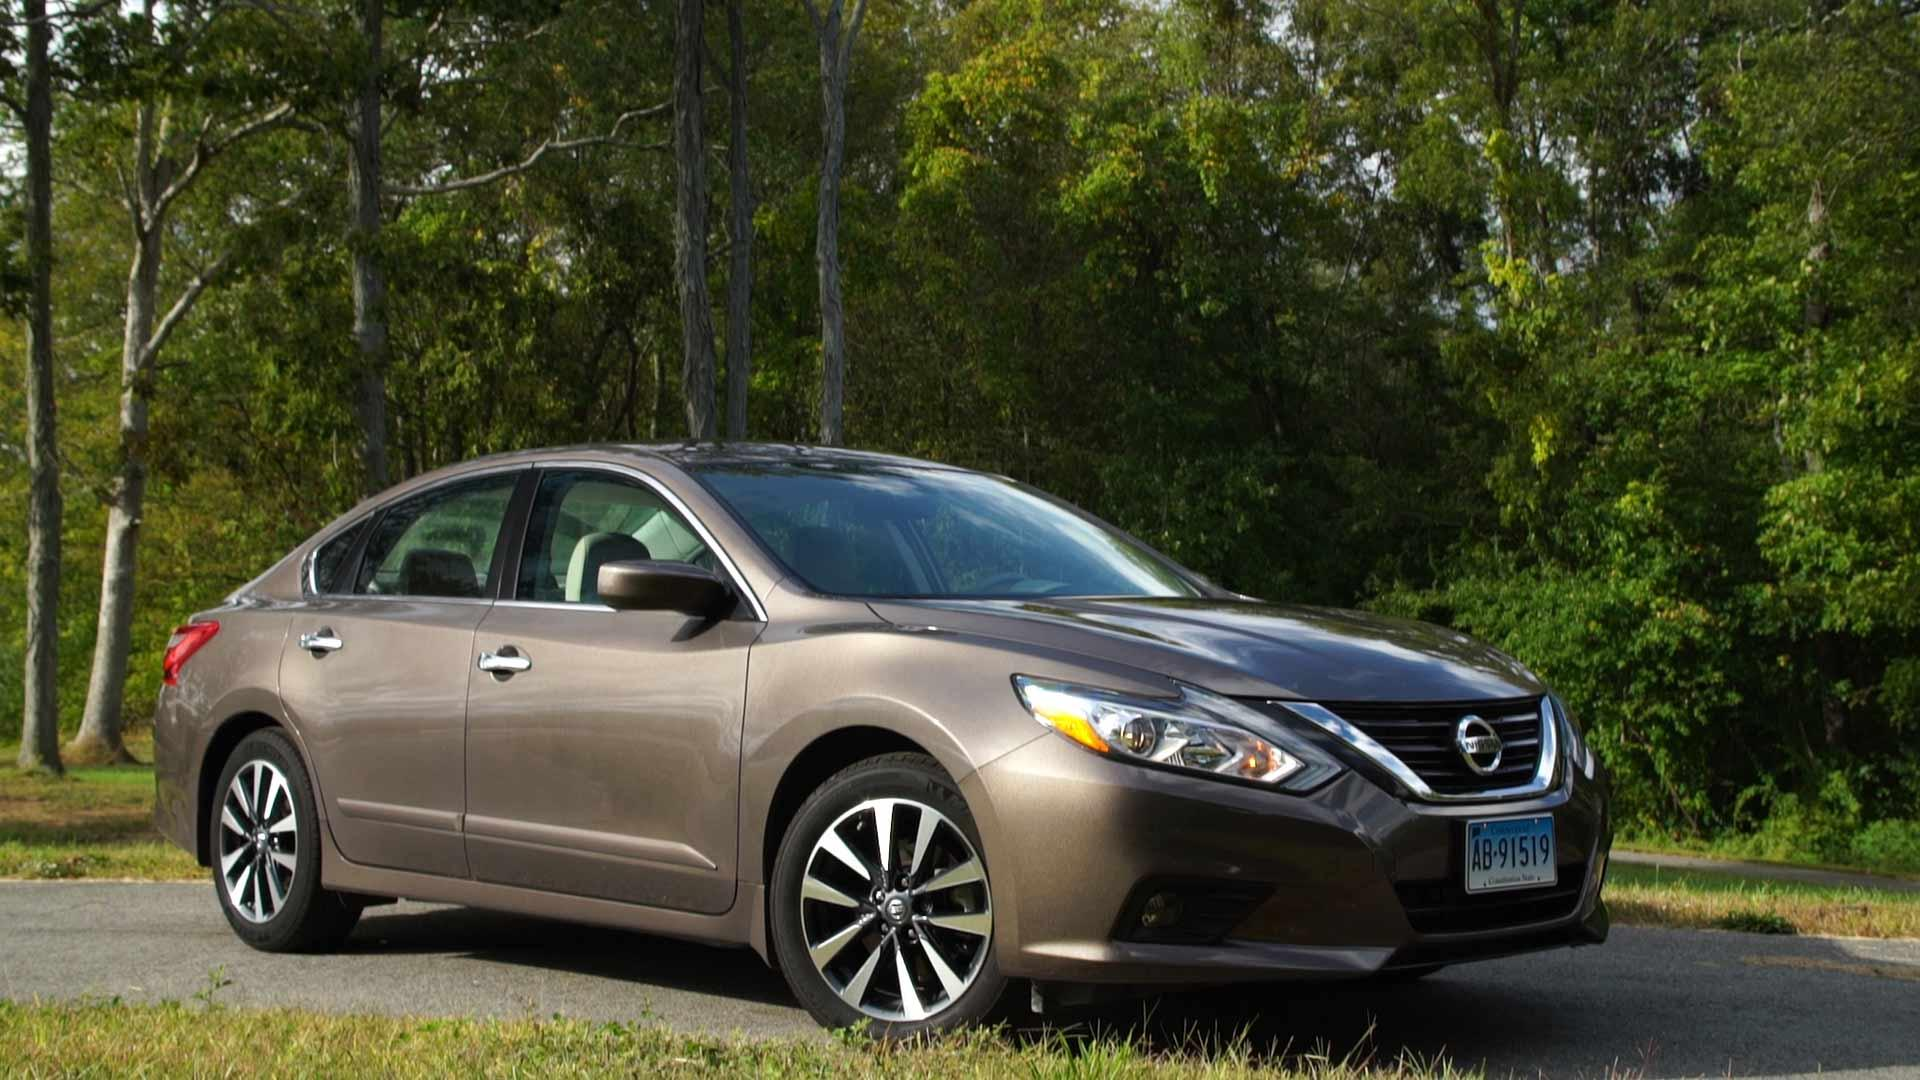 2018 Nissan Altima Reviews, Ratings, Prices - Consumer Reports